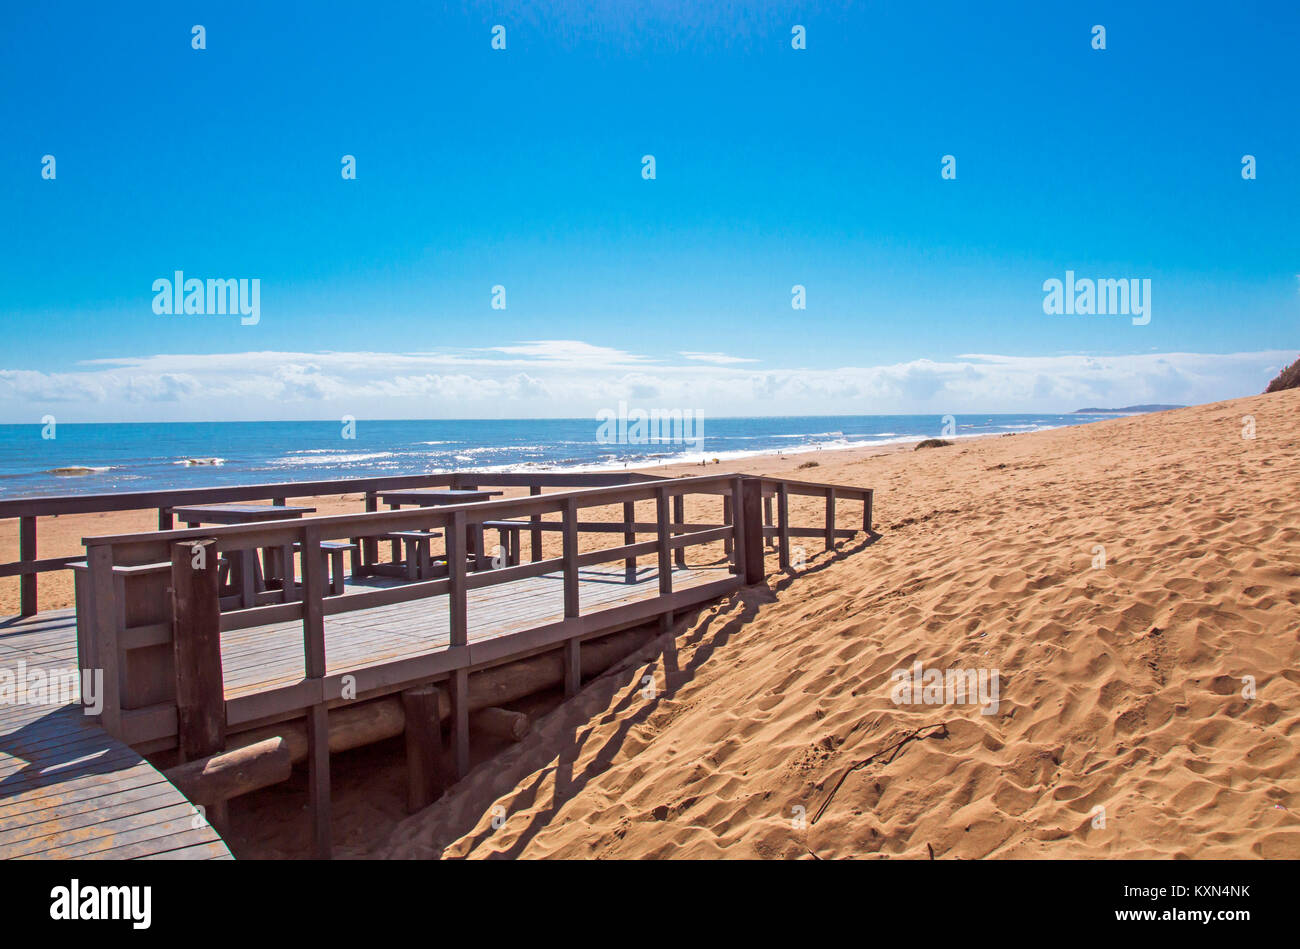 Empty wooden walkway entrance onto sandy beach against sea and blue cloudy sky landscape at Mtunzini in South Africa - Stock Image